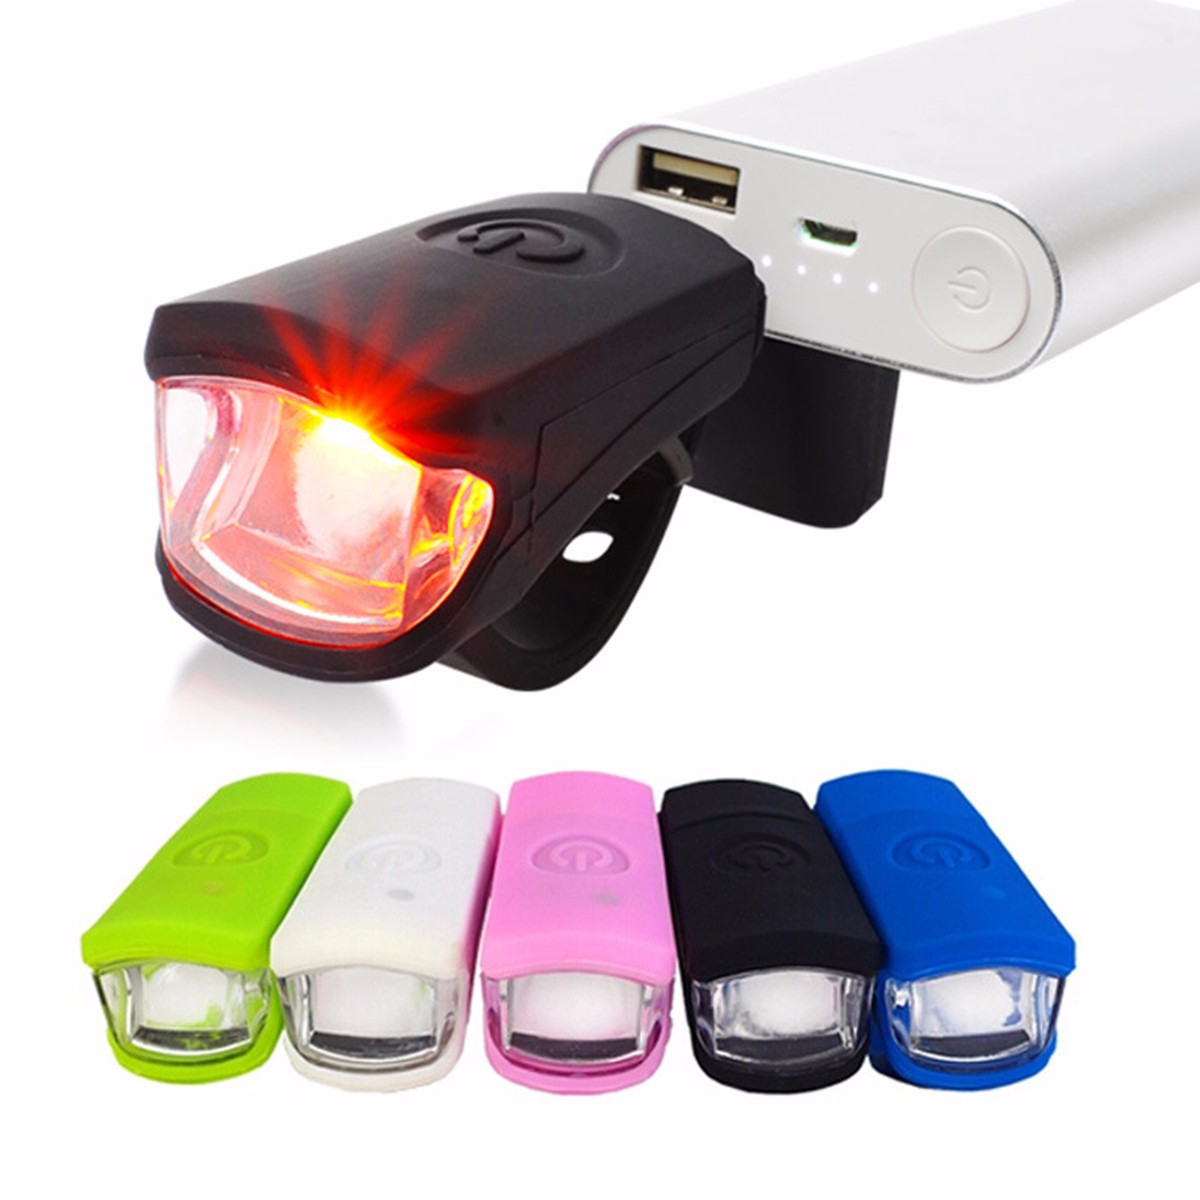 250LM 3W LED USB Rechargeable Head Light Flash Bicycle Bike Stop